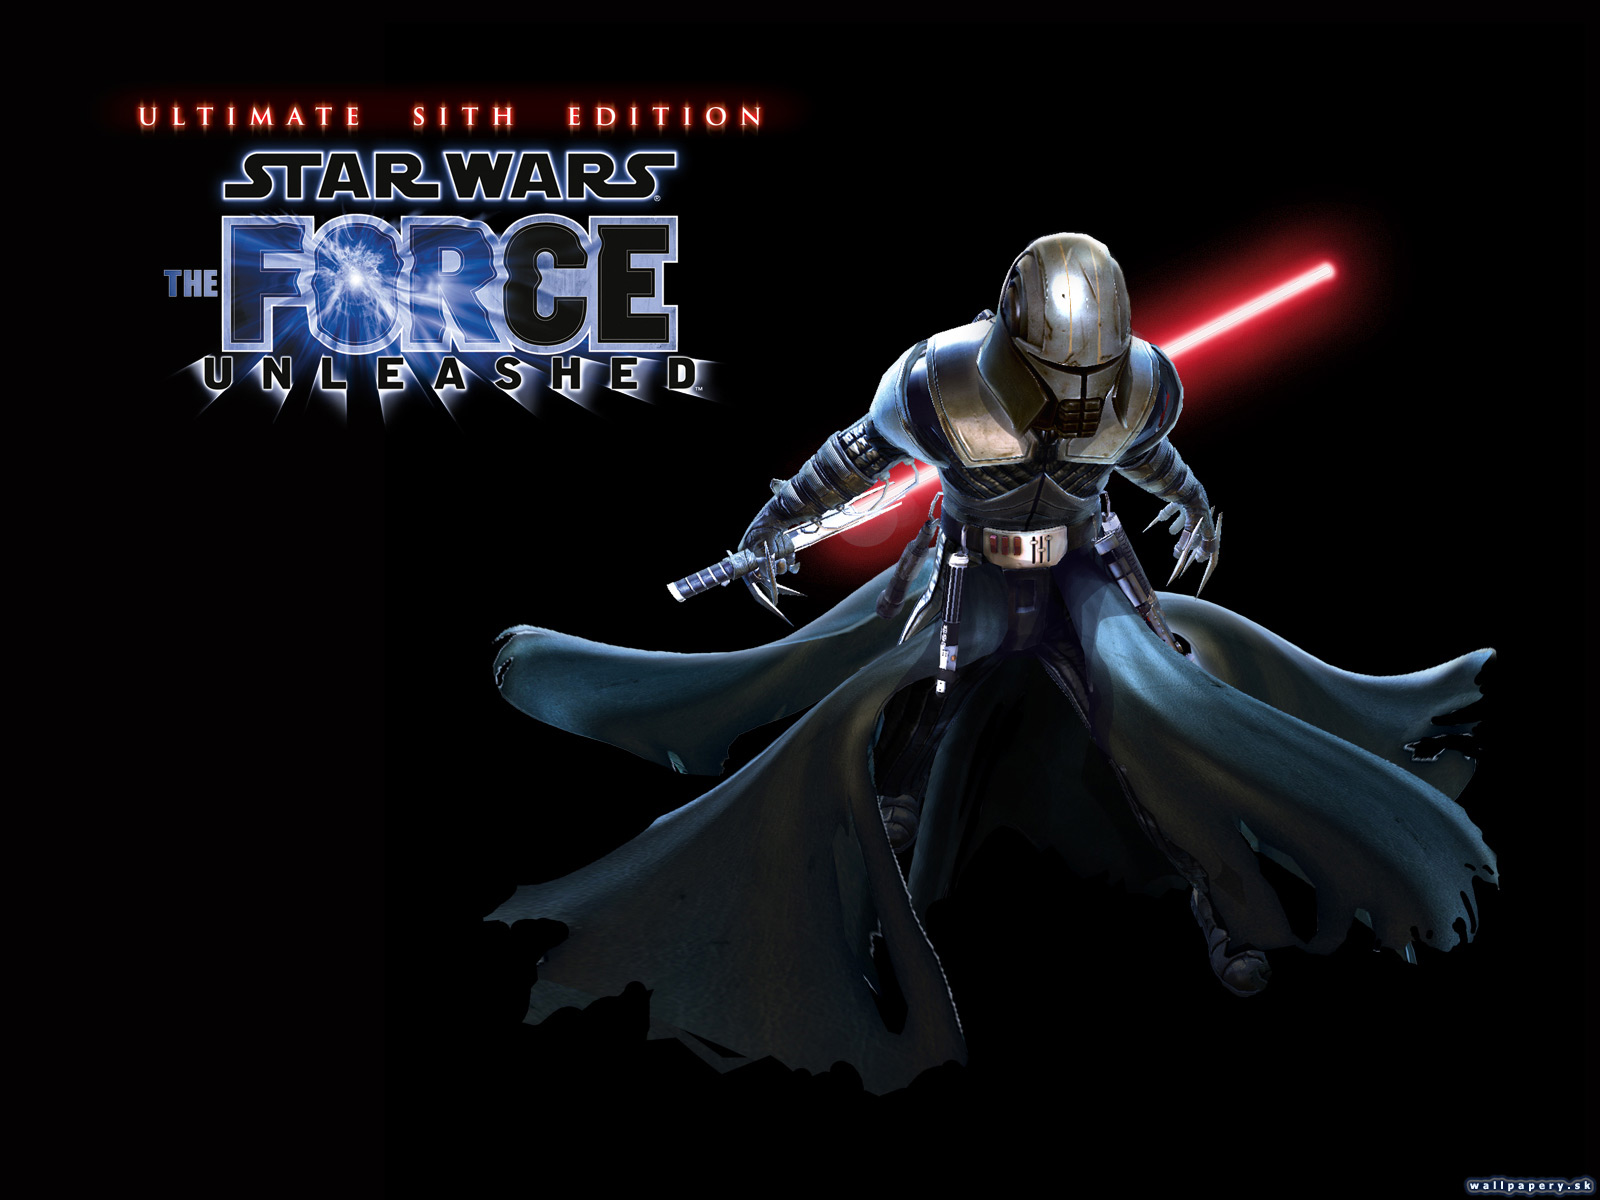 Buy Star Wars The Force Unleashed Ultimate Sith Ed Eng Free And Download